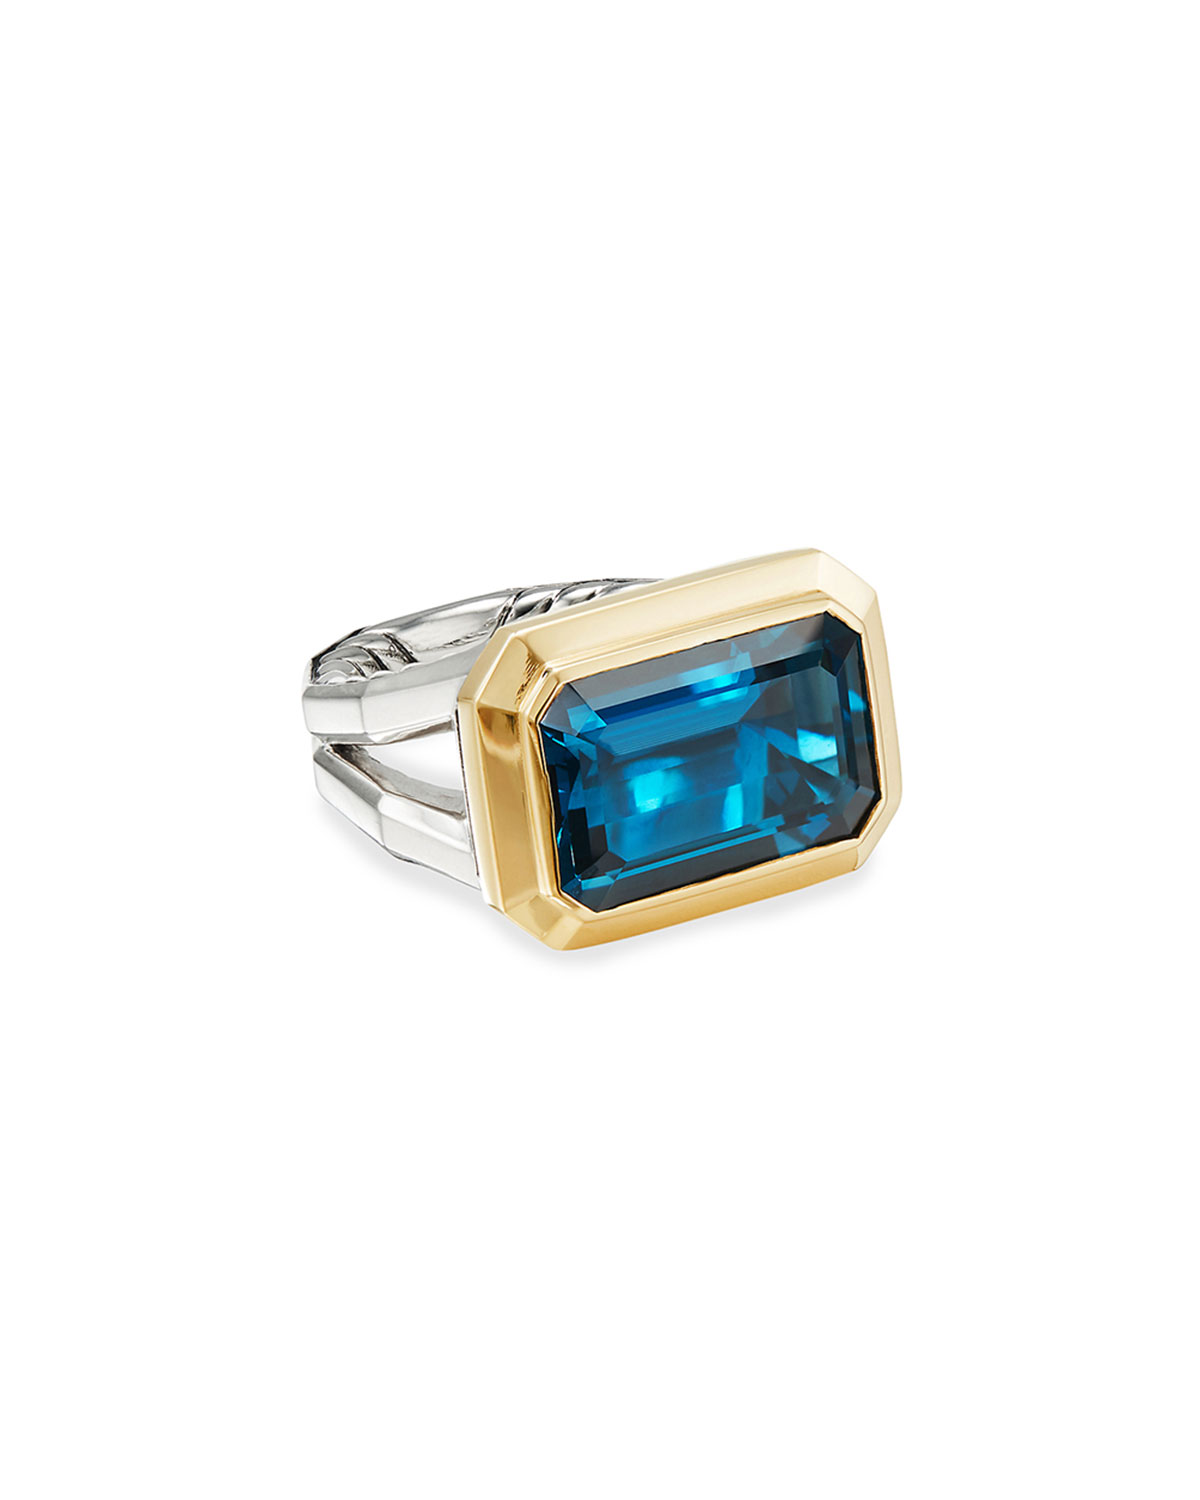 David Yurman Novella 16mm Stone Ring w/ 18k Gold & Topaz, Size 5-8